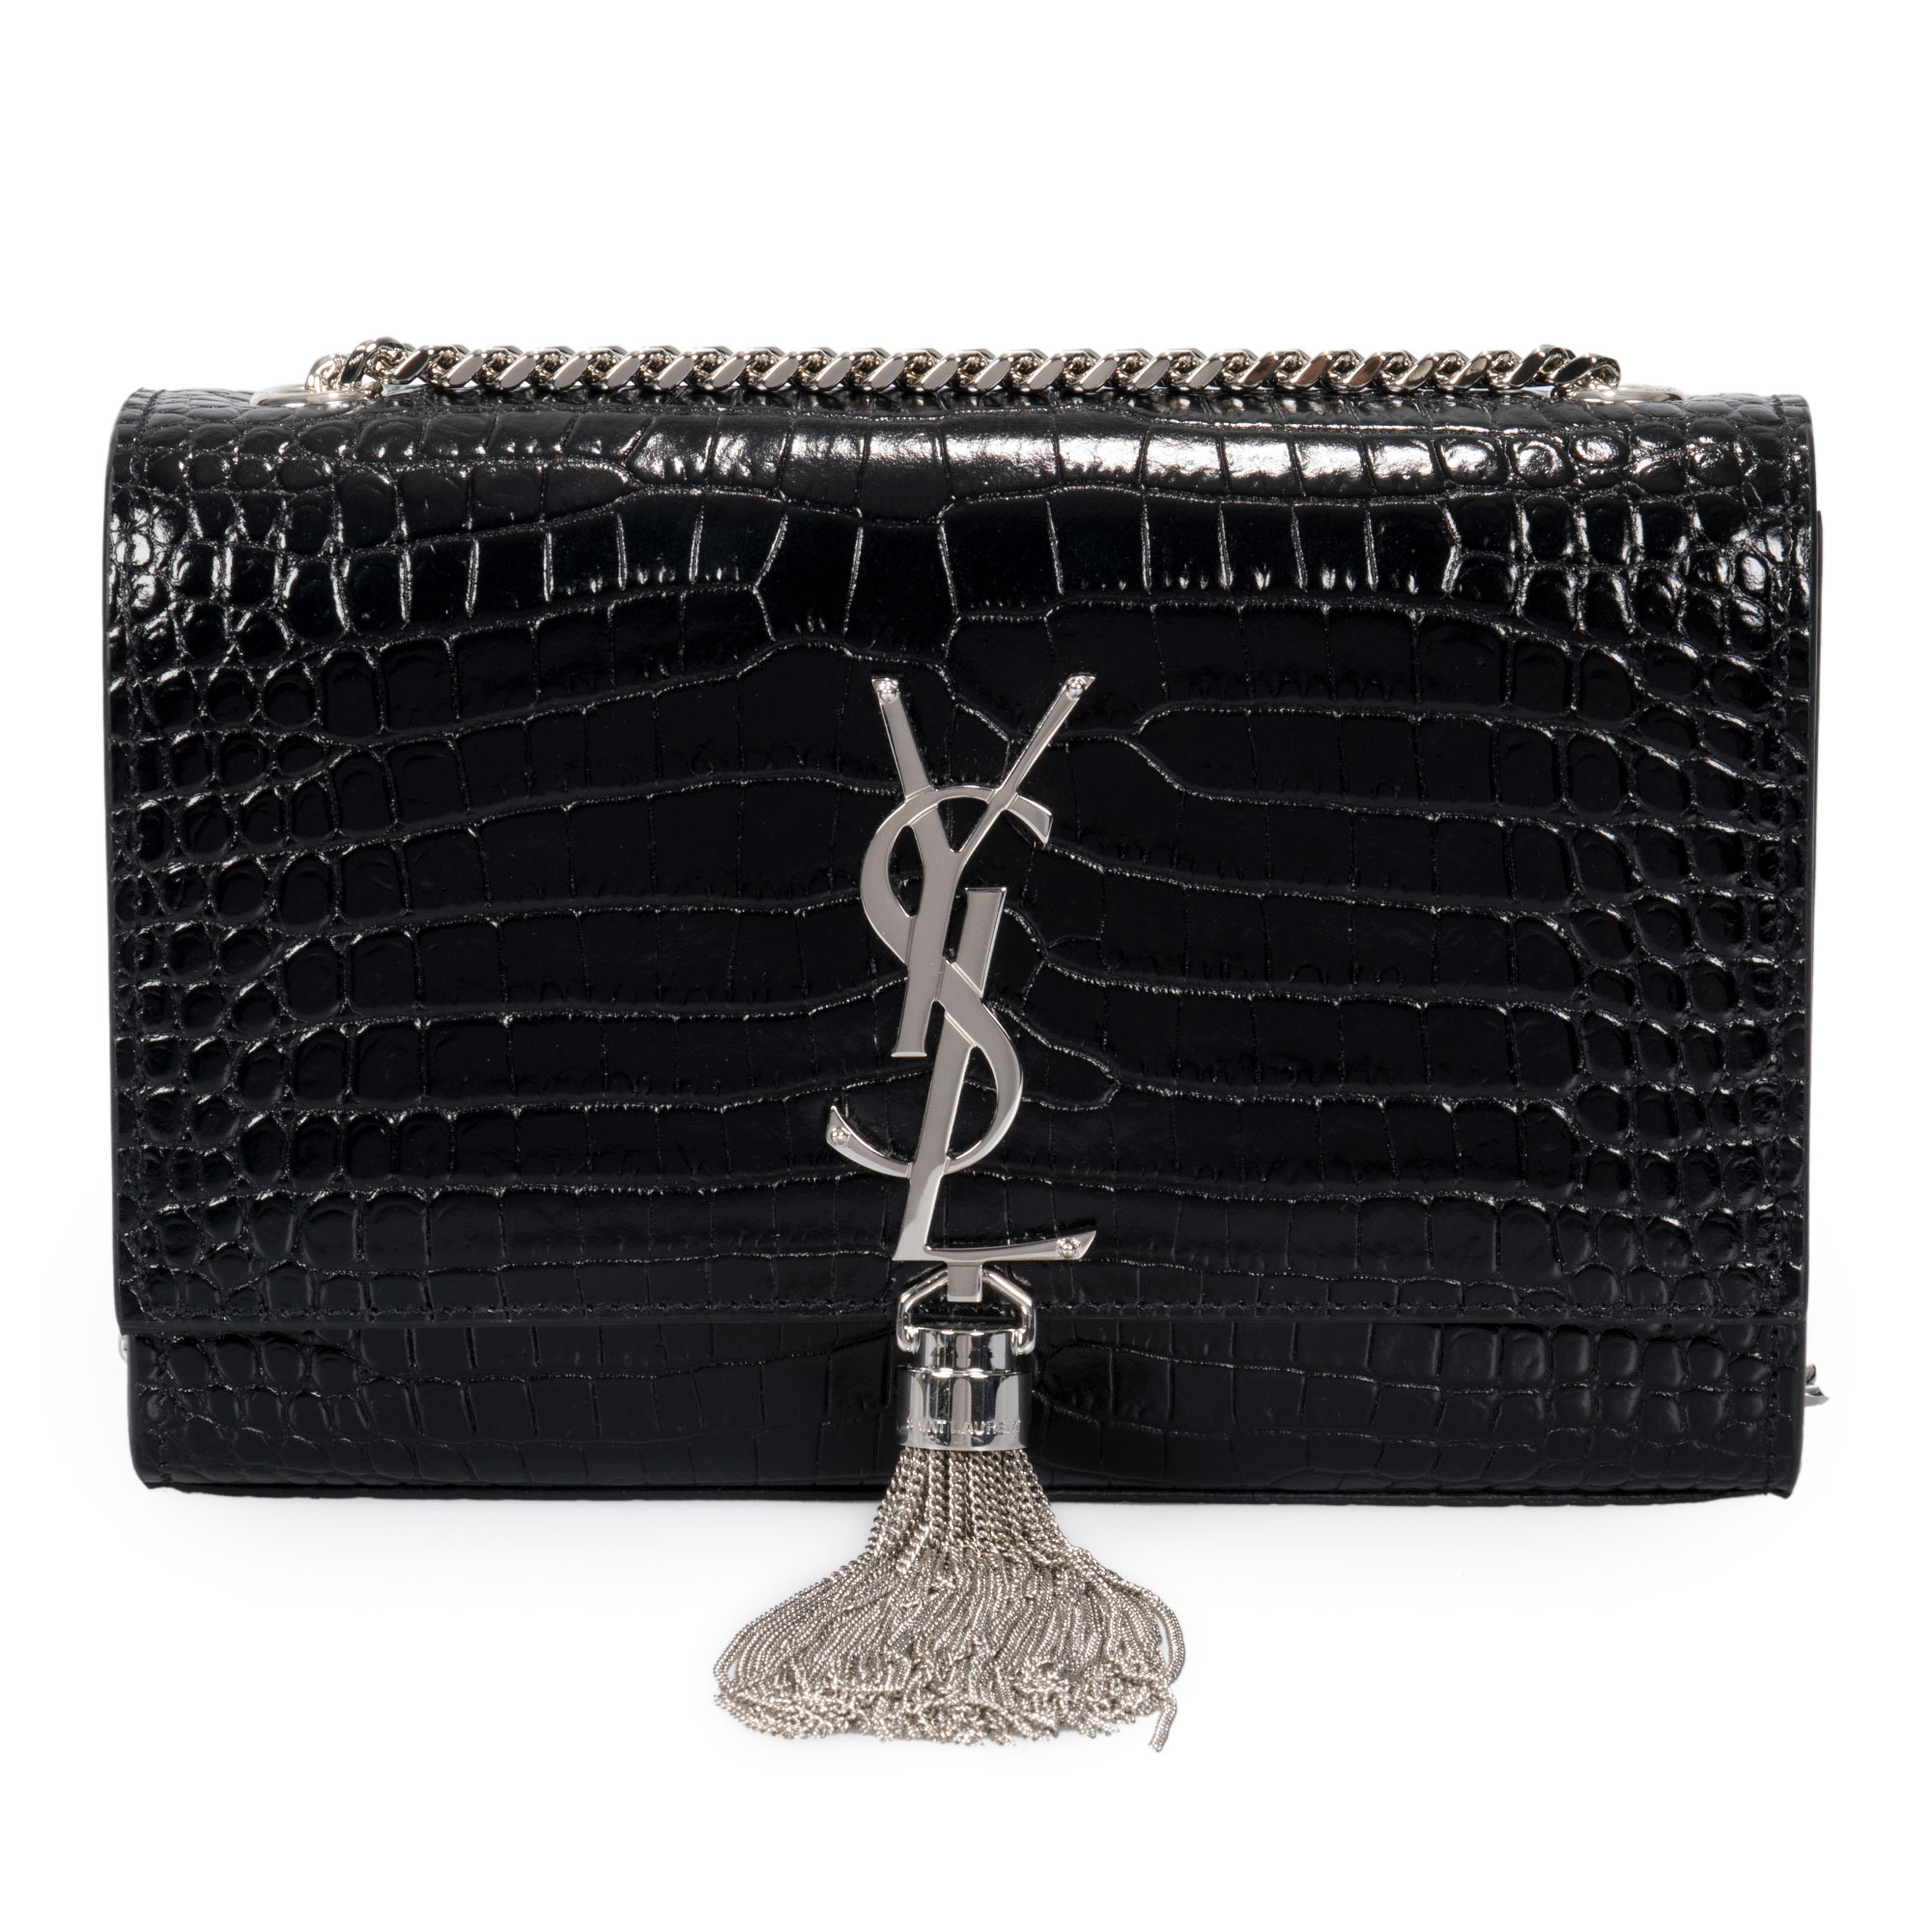 Saint Laurent Saint Laurent Small Kate Monogram Chain Bag with Tassel 487925ceda5c6